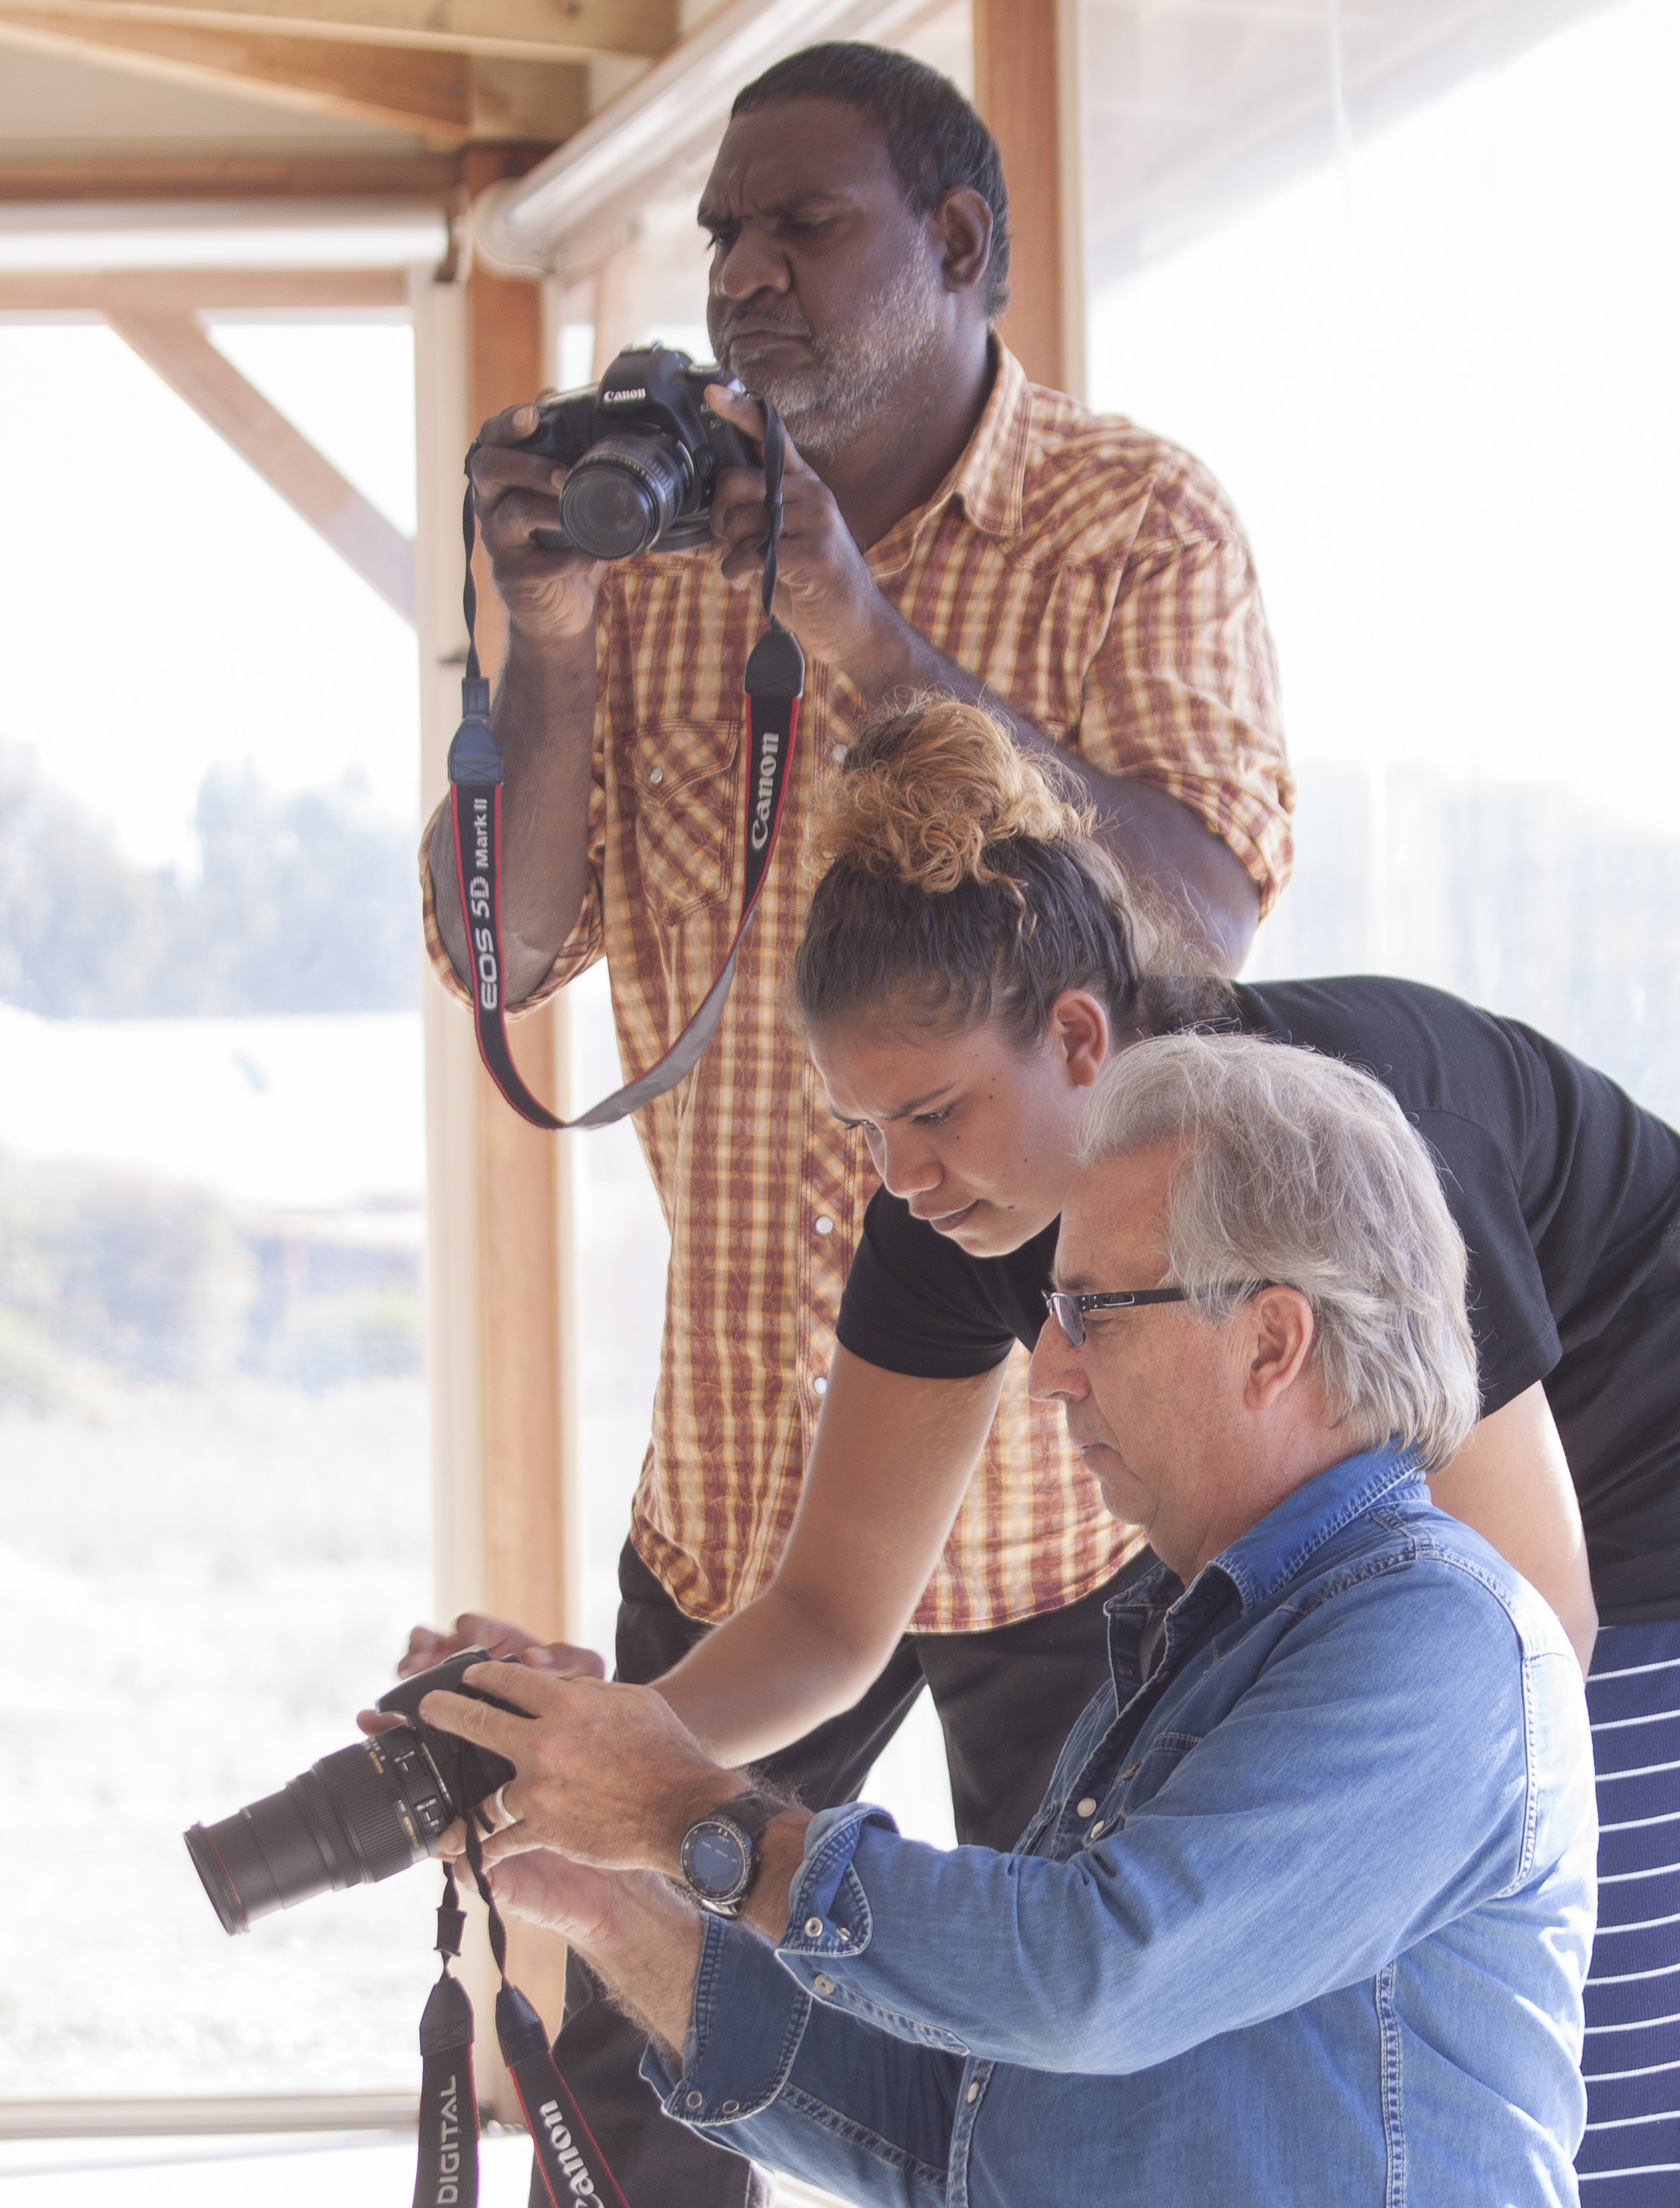 Clayton Cherel, Cecilia Umbagai and David Dare Parker during the 'Photographing People' workshop.